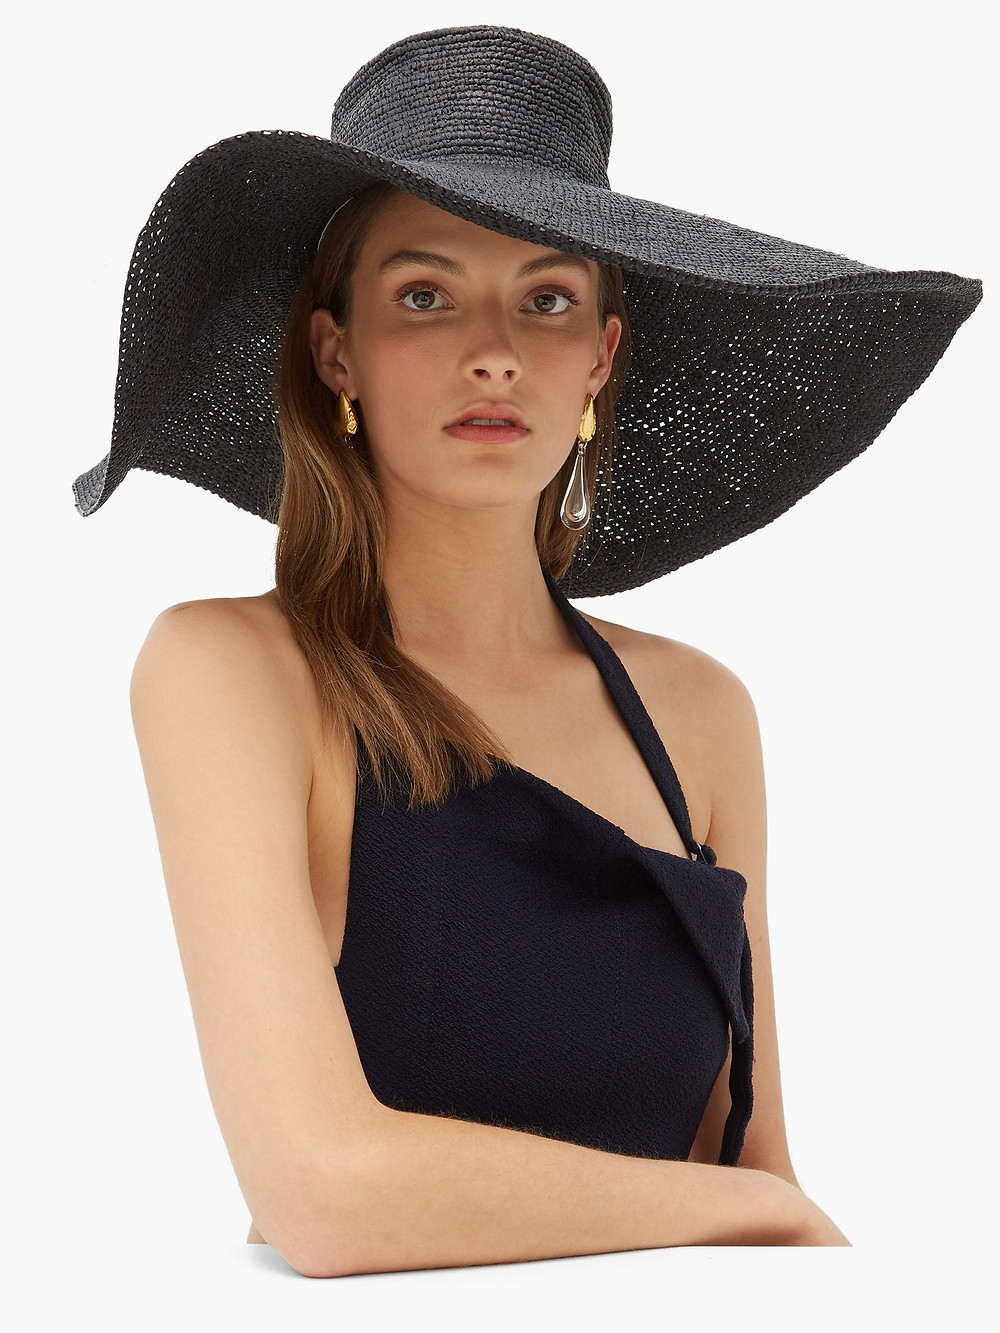 Black wide brimmed straw hat